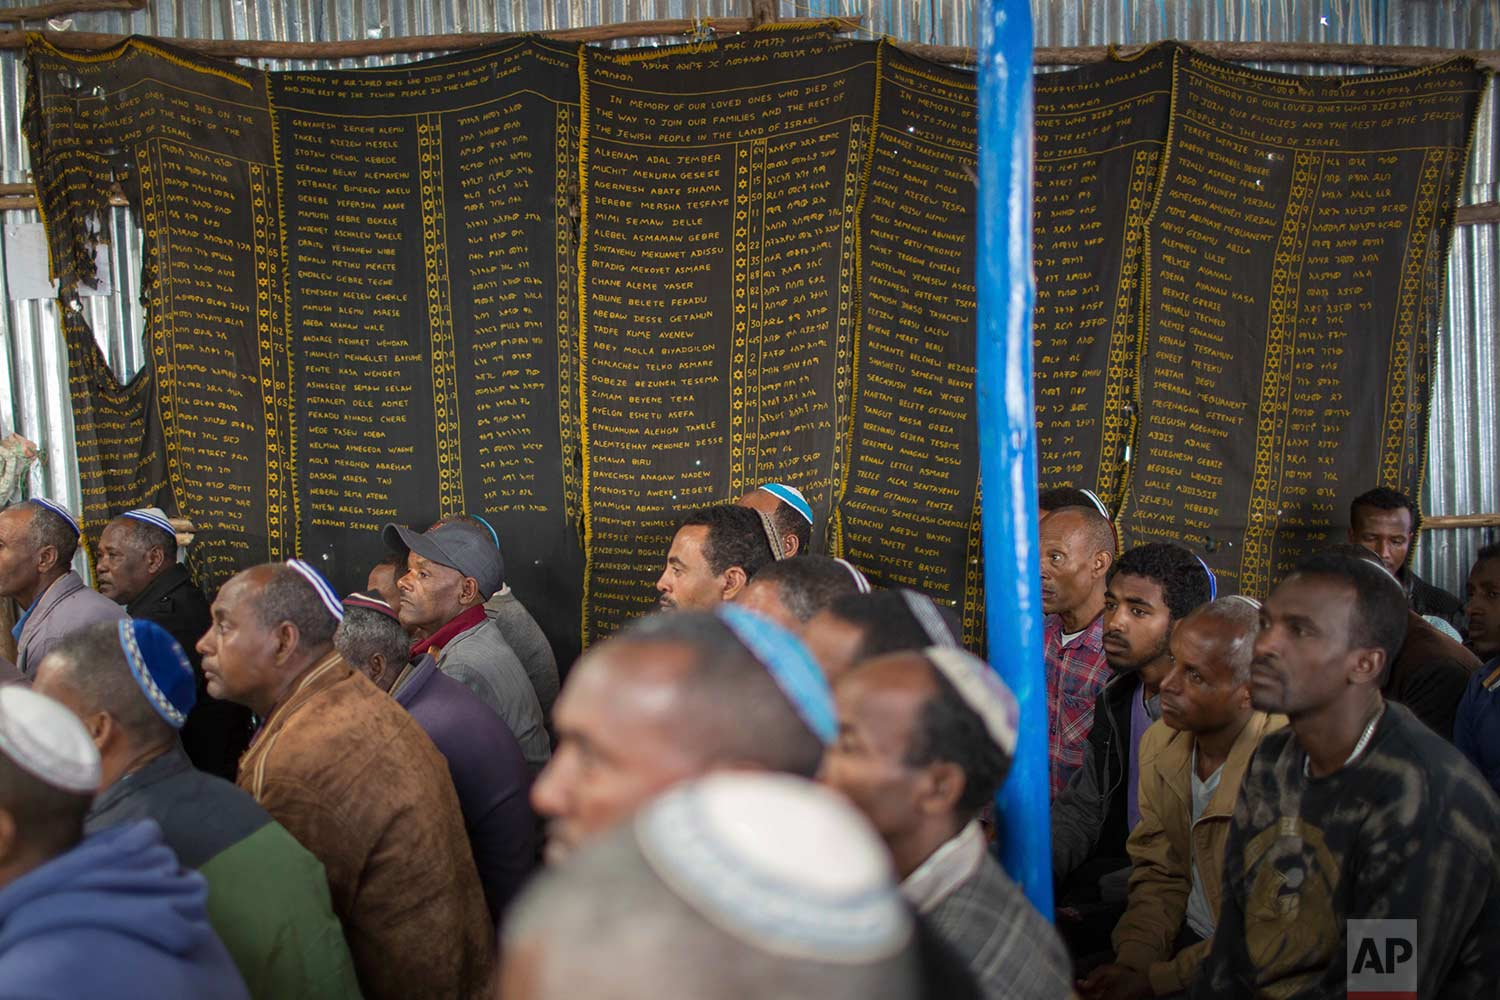 Members of Ethiopia's Jewish community attend a solidarity event for their relatives in Israel, at the synagogue in Addis Ababa, Ethiopia Wednesday, Feb. 28, 2018. (AP Photo/Mulugeta Ayene)